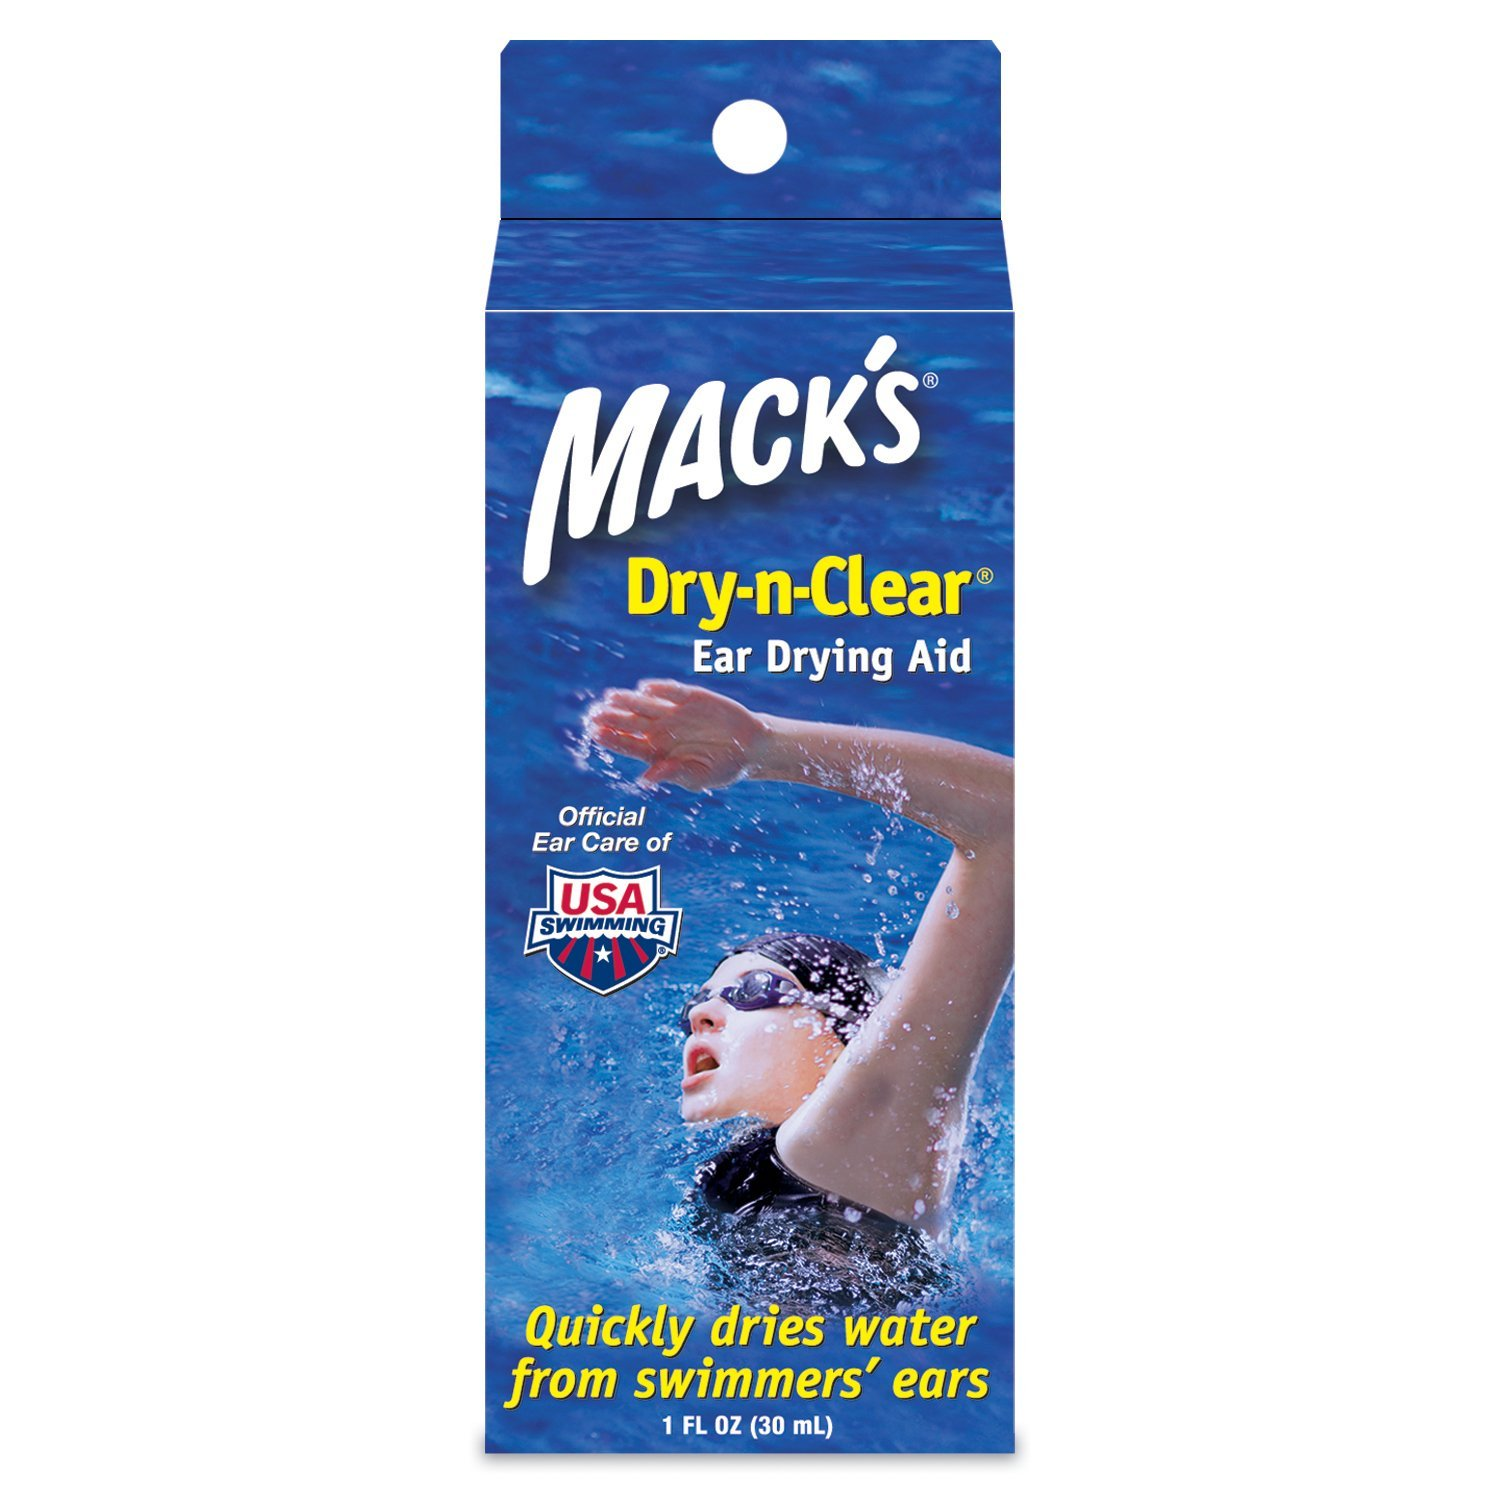 Macks Dry and Clear Drying Ear Drops